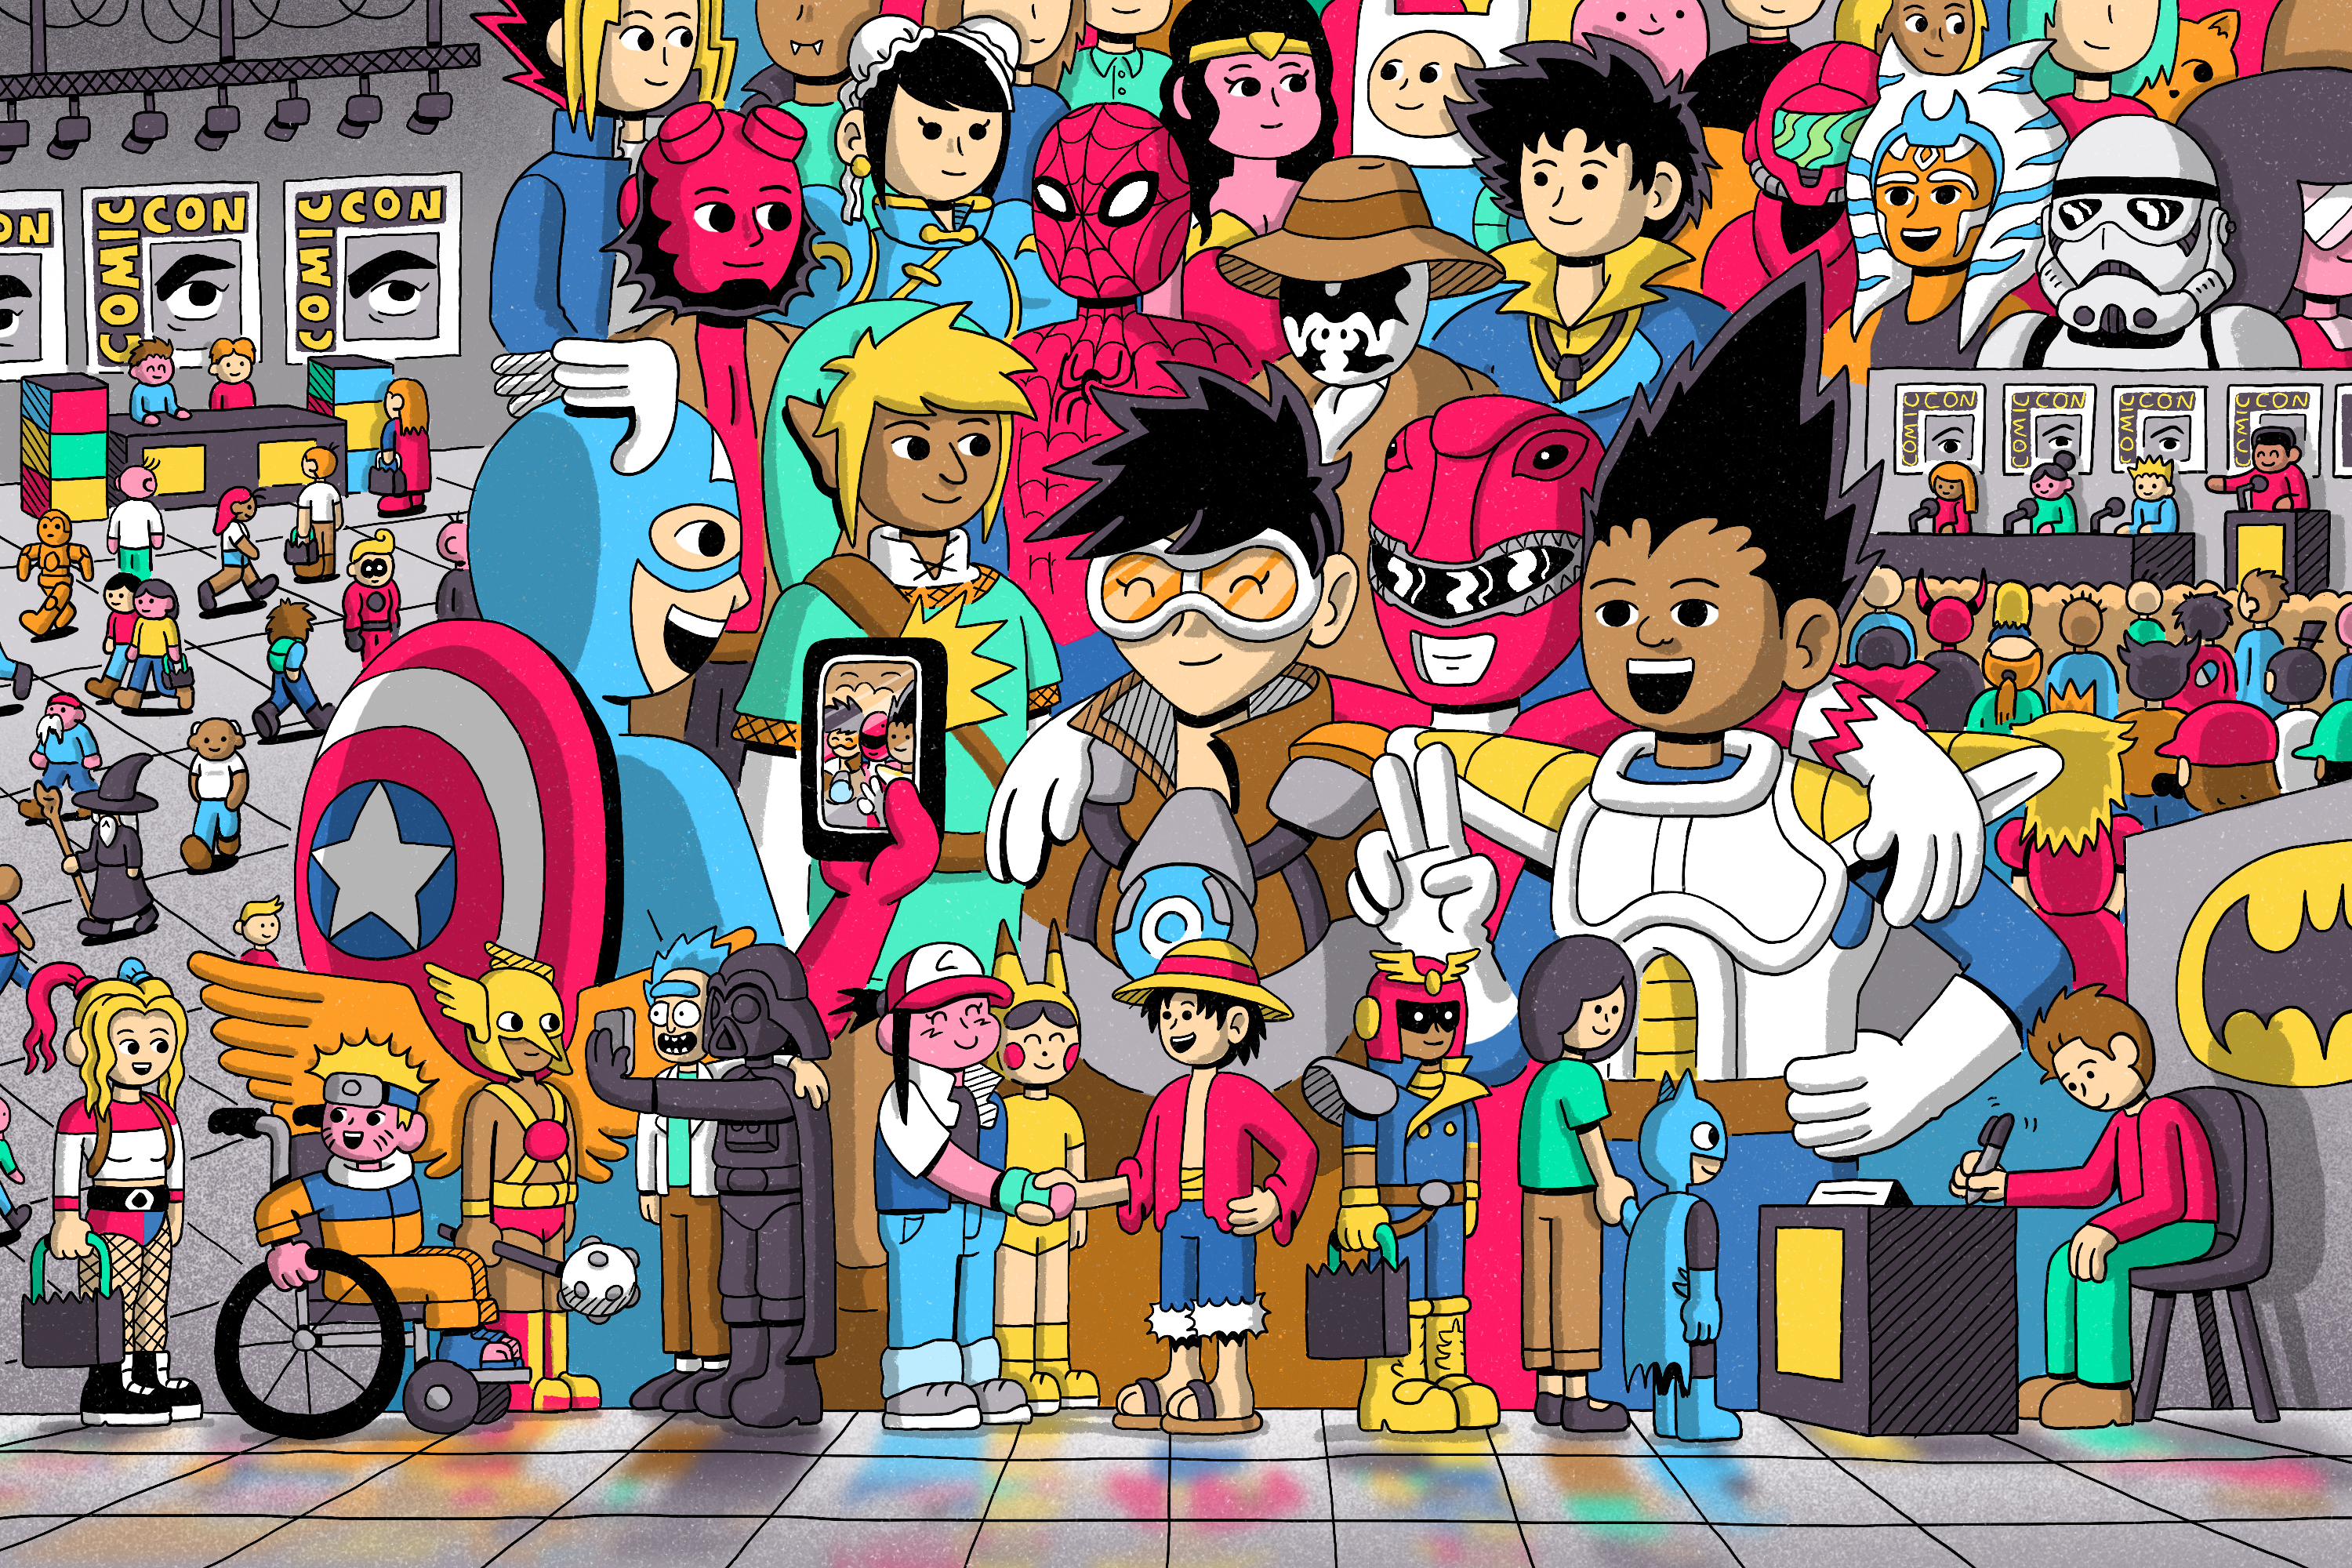 Comic style illustration featuring cosplay characters from Comic-Con